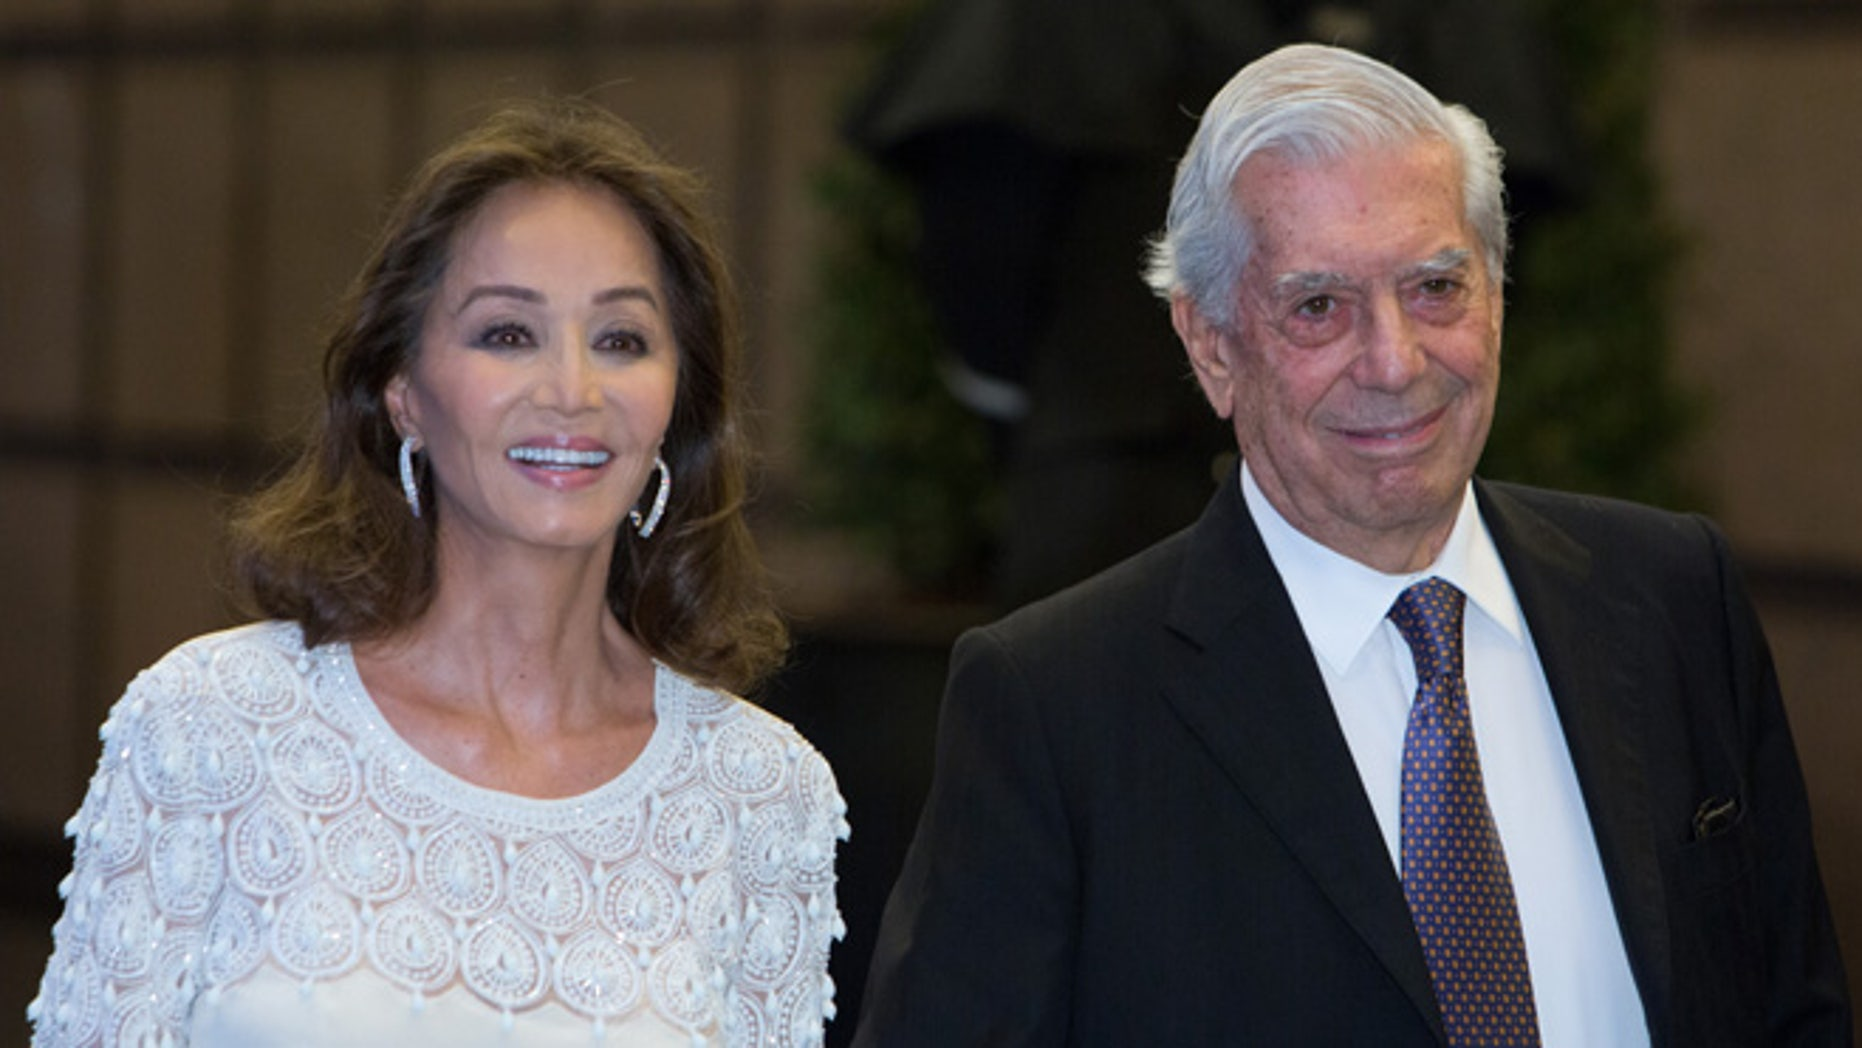 Isabel Preysler and Mario Vargas Llosa on March 28, 2016 in Madrid, Spain.